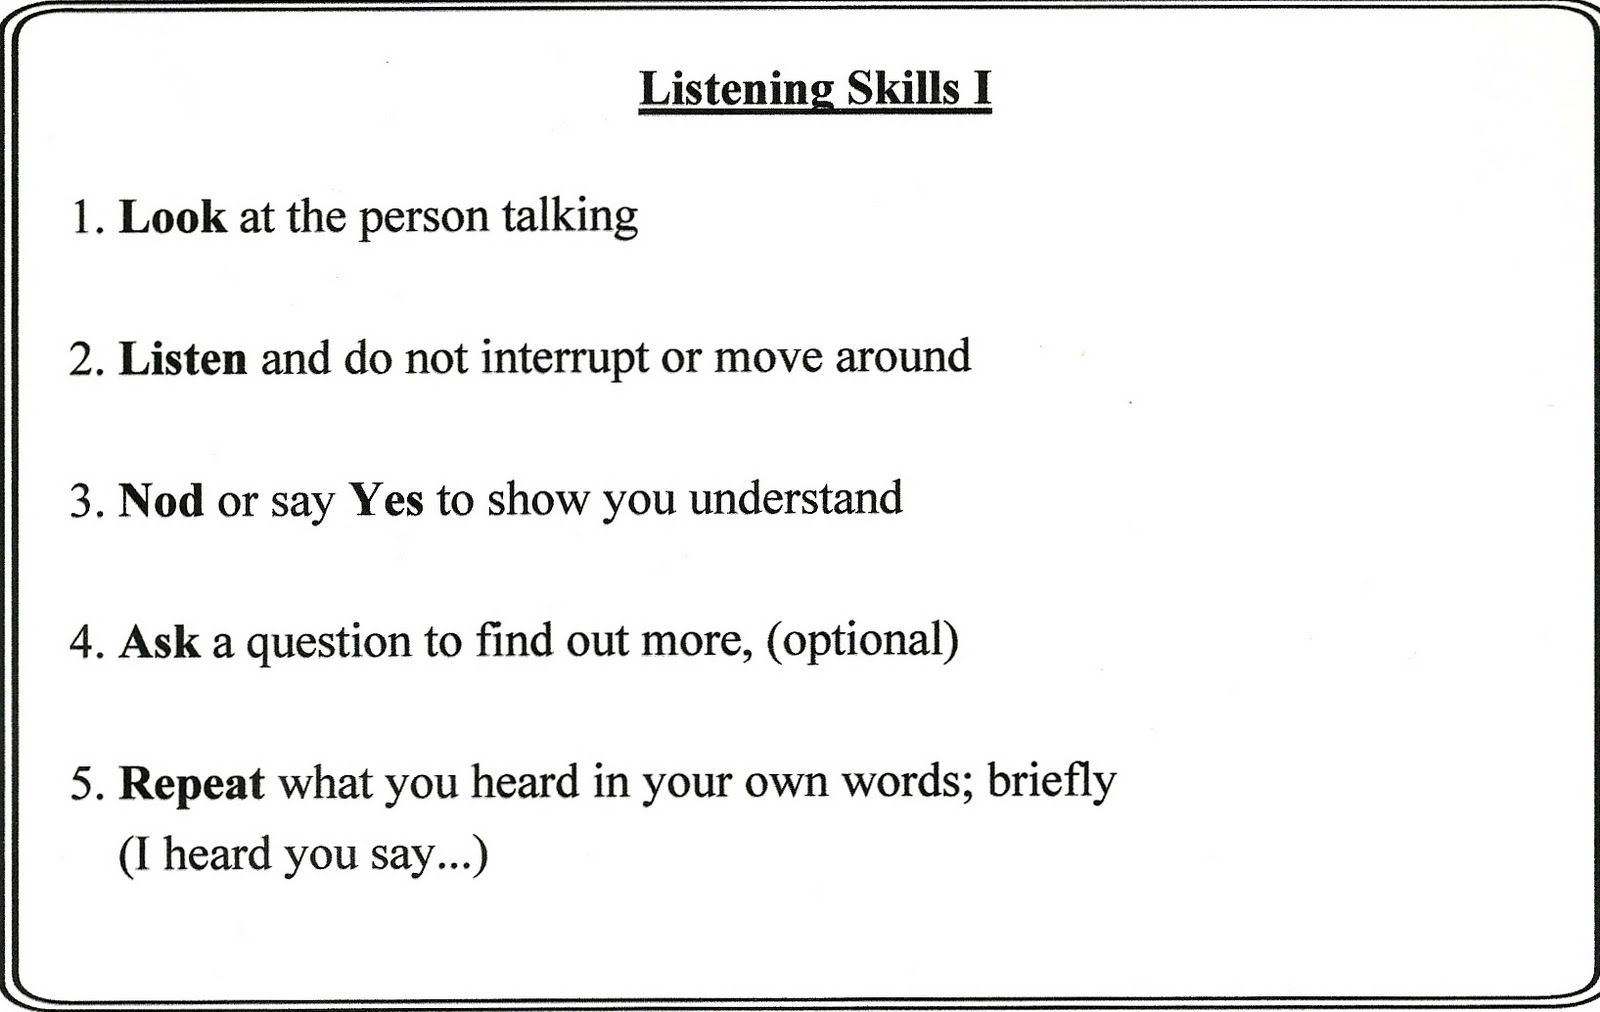 Active Listening Is Very Important When Trying To Resolve Conflict